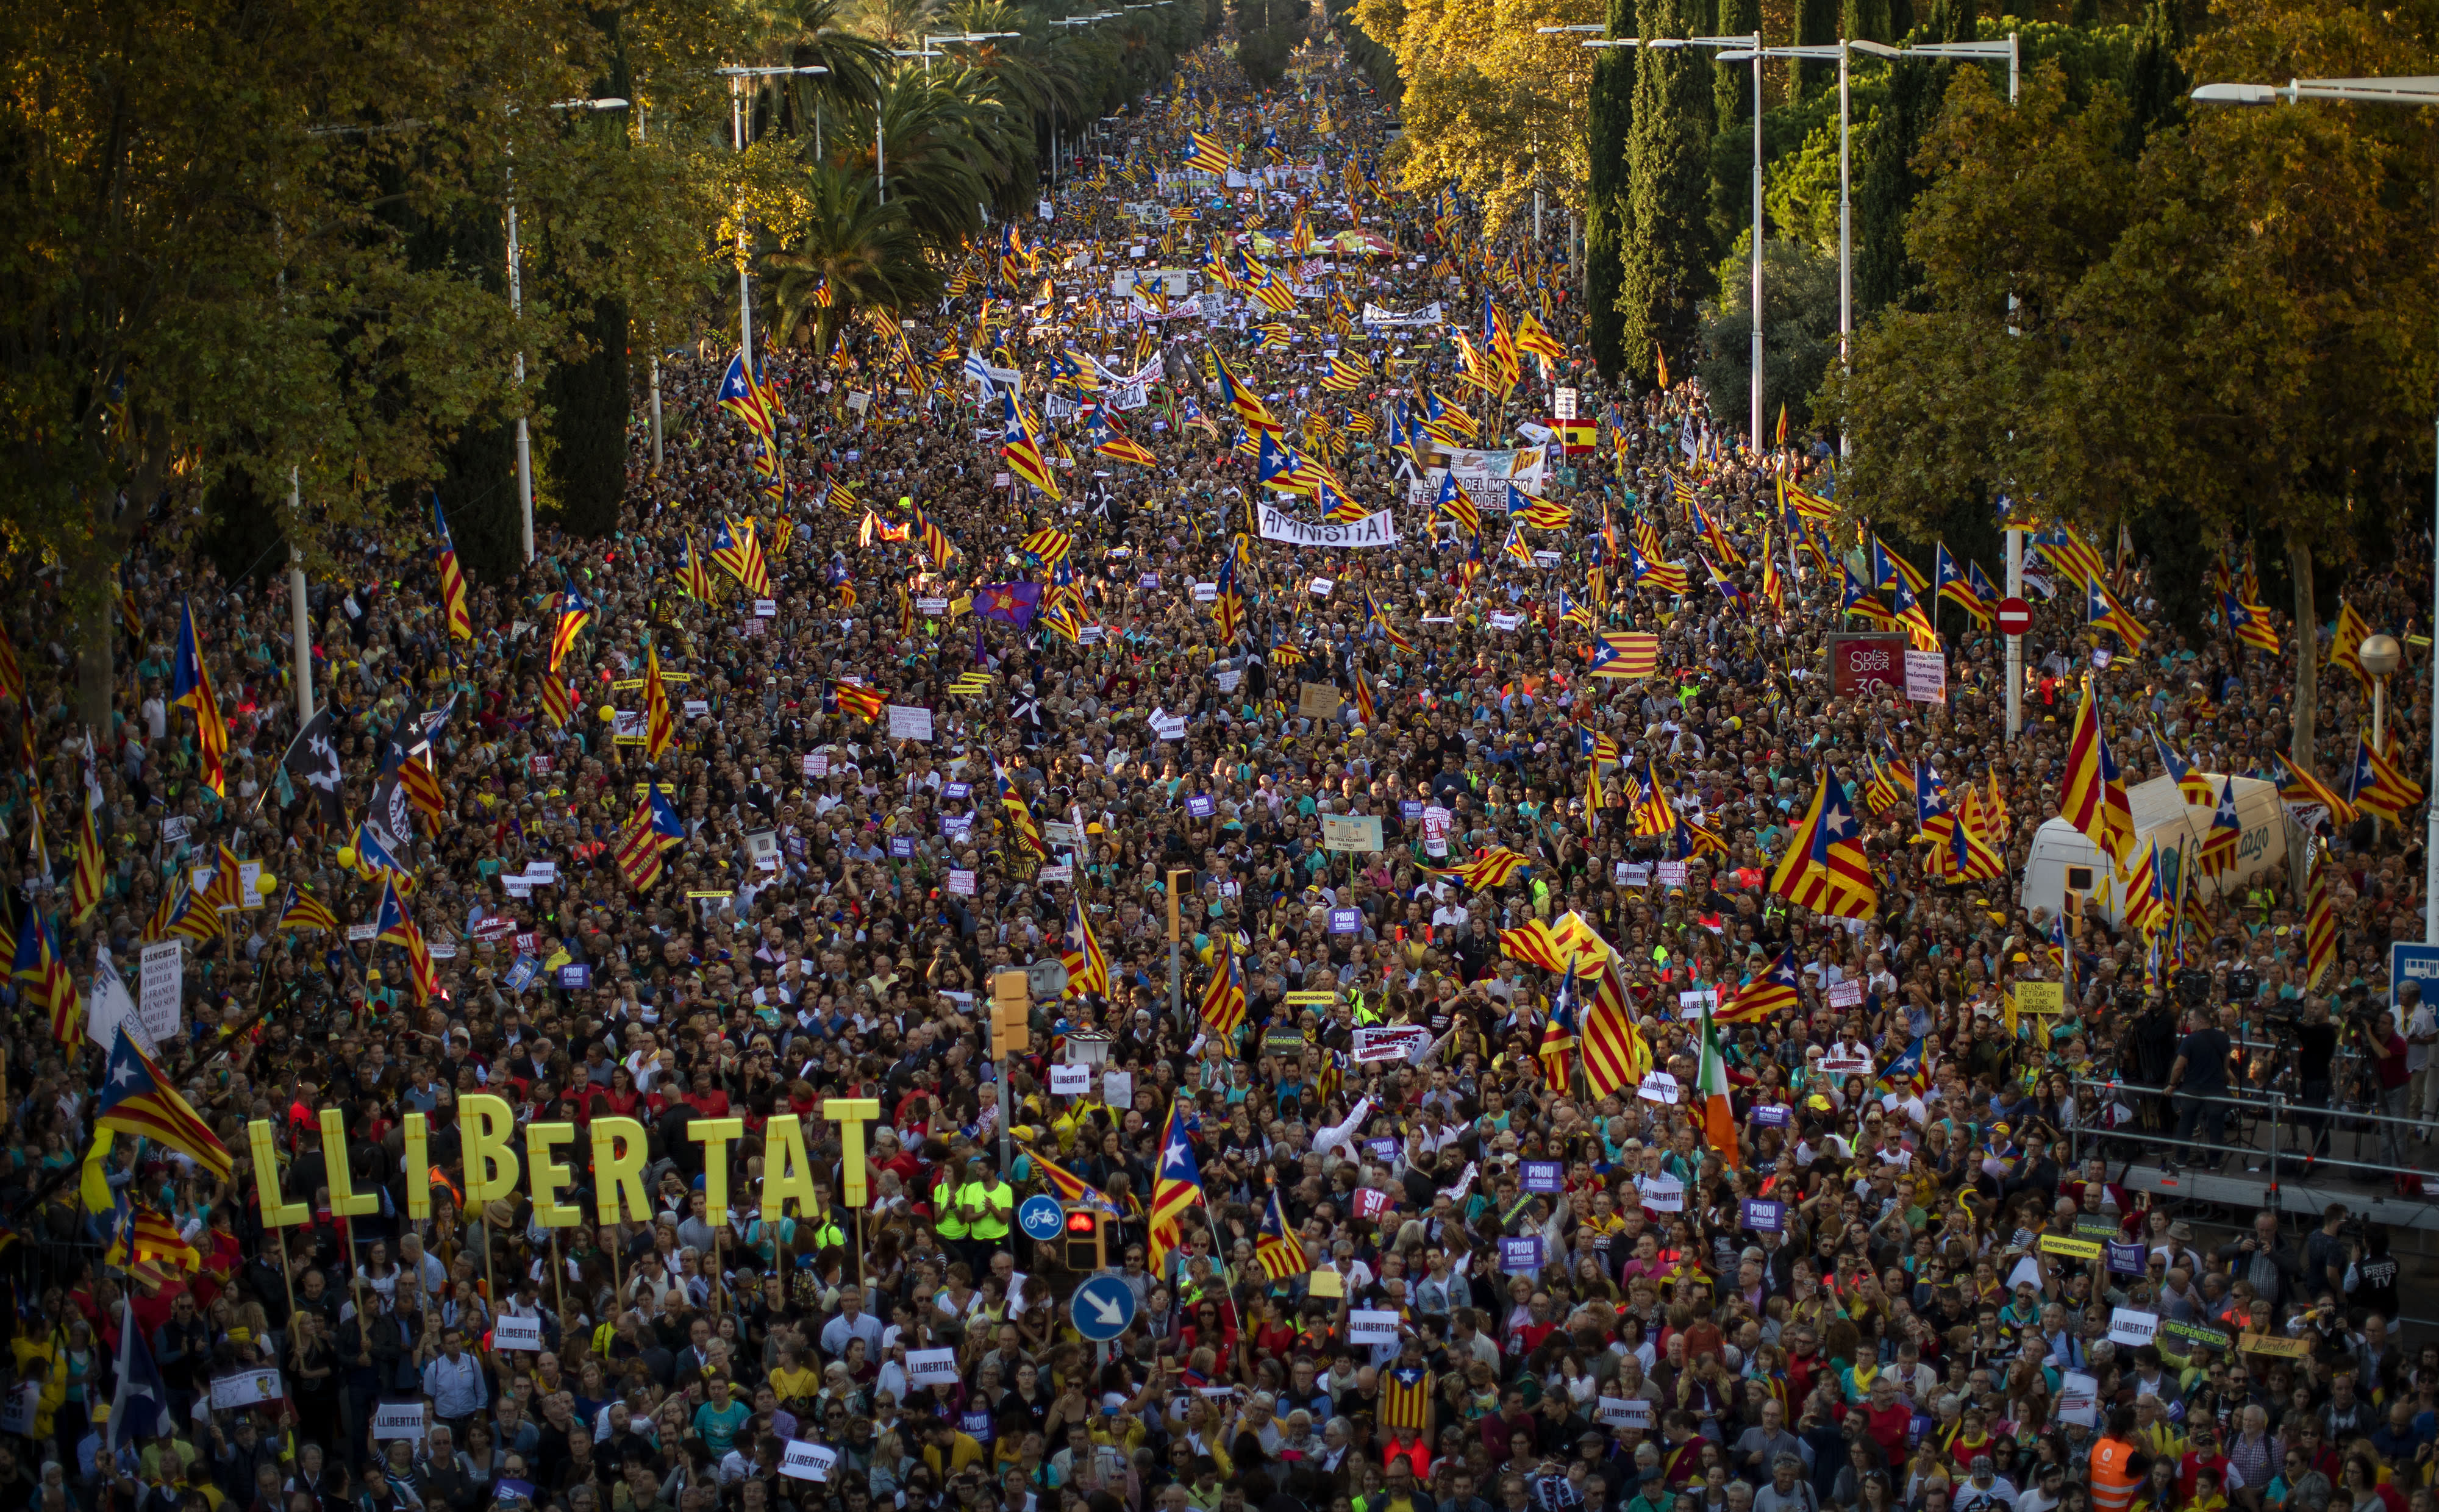 Catalan pro-independence protesters gather during a demonstration in Barcelona, Spain, Saturday, Oct. 26, 2019. Protests turned violent last week after Spain's Supreme Court convicted 12 separatist leaders of illegally promoting the wealthy Catalonia region's independence and sentenced nine of them to prison. (AP Photo/Emilio Morenatti)